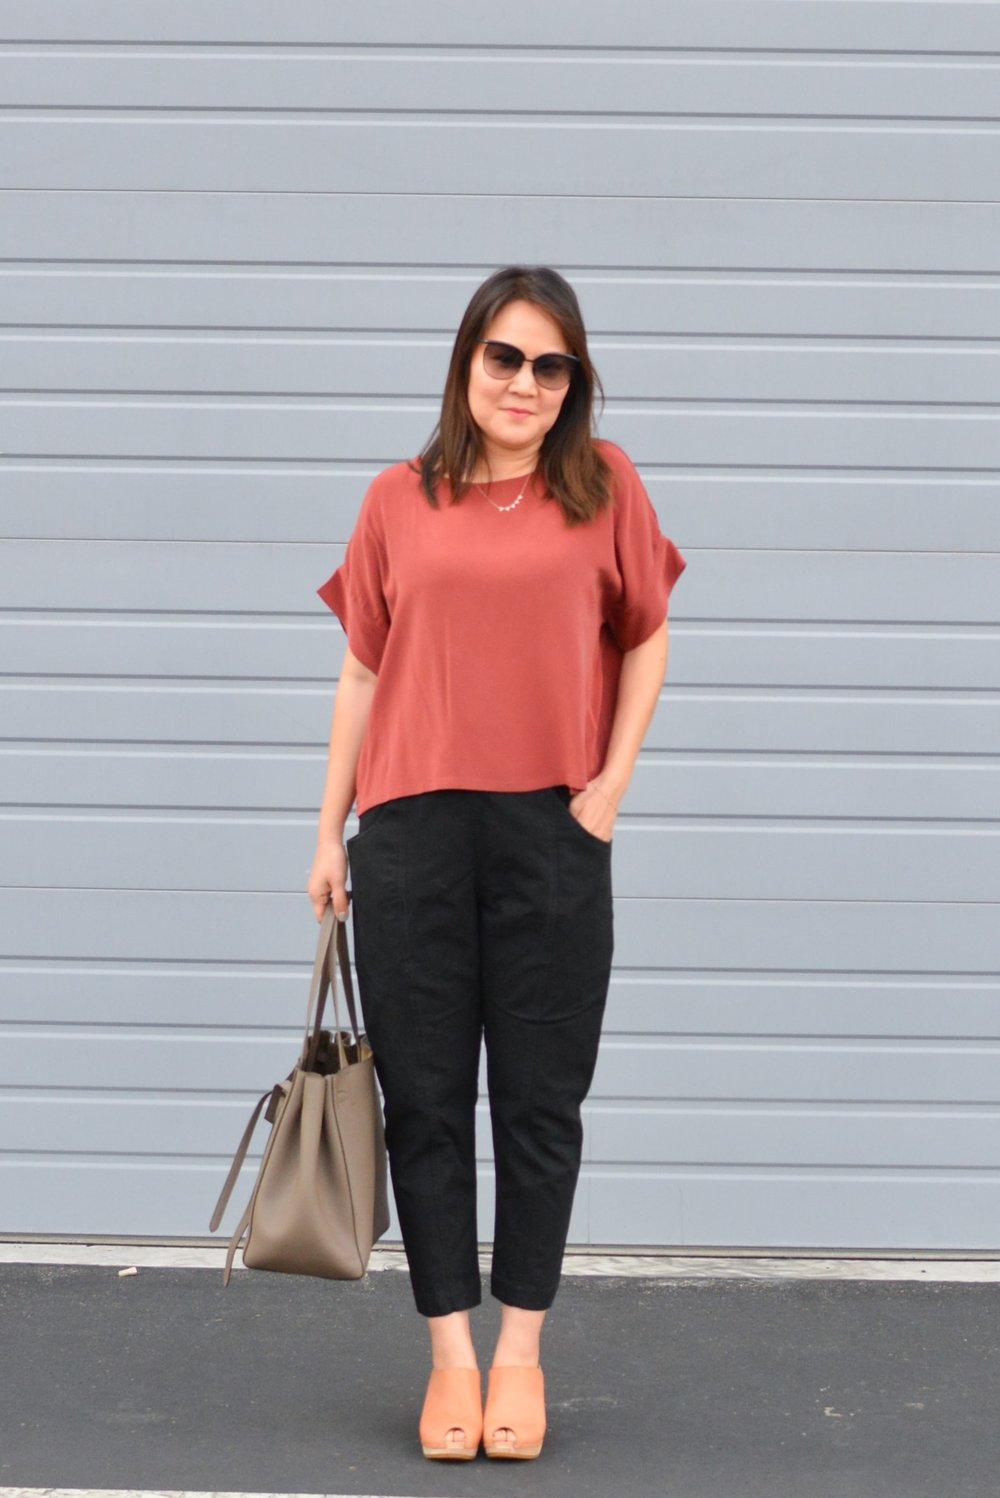 Elizabeth Suzann Review Clyde pants (1 of 1)-min.jpg